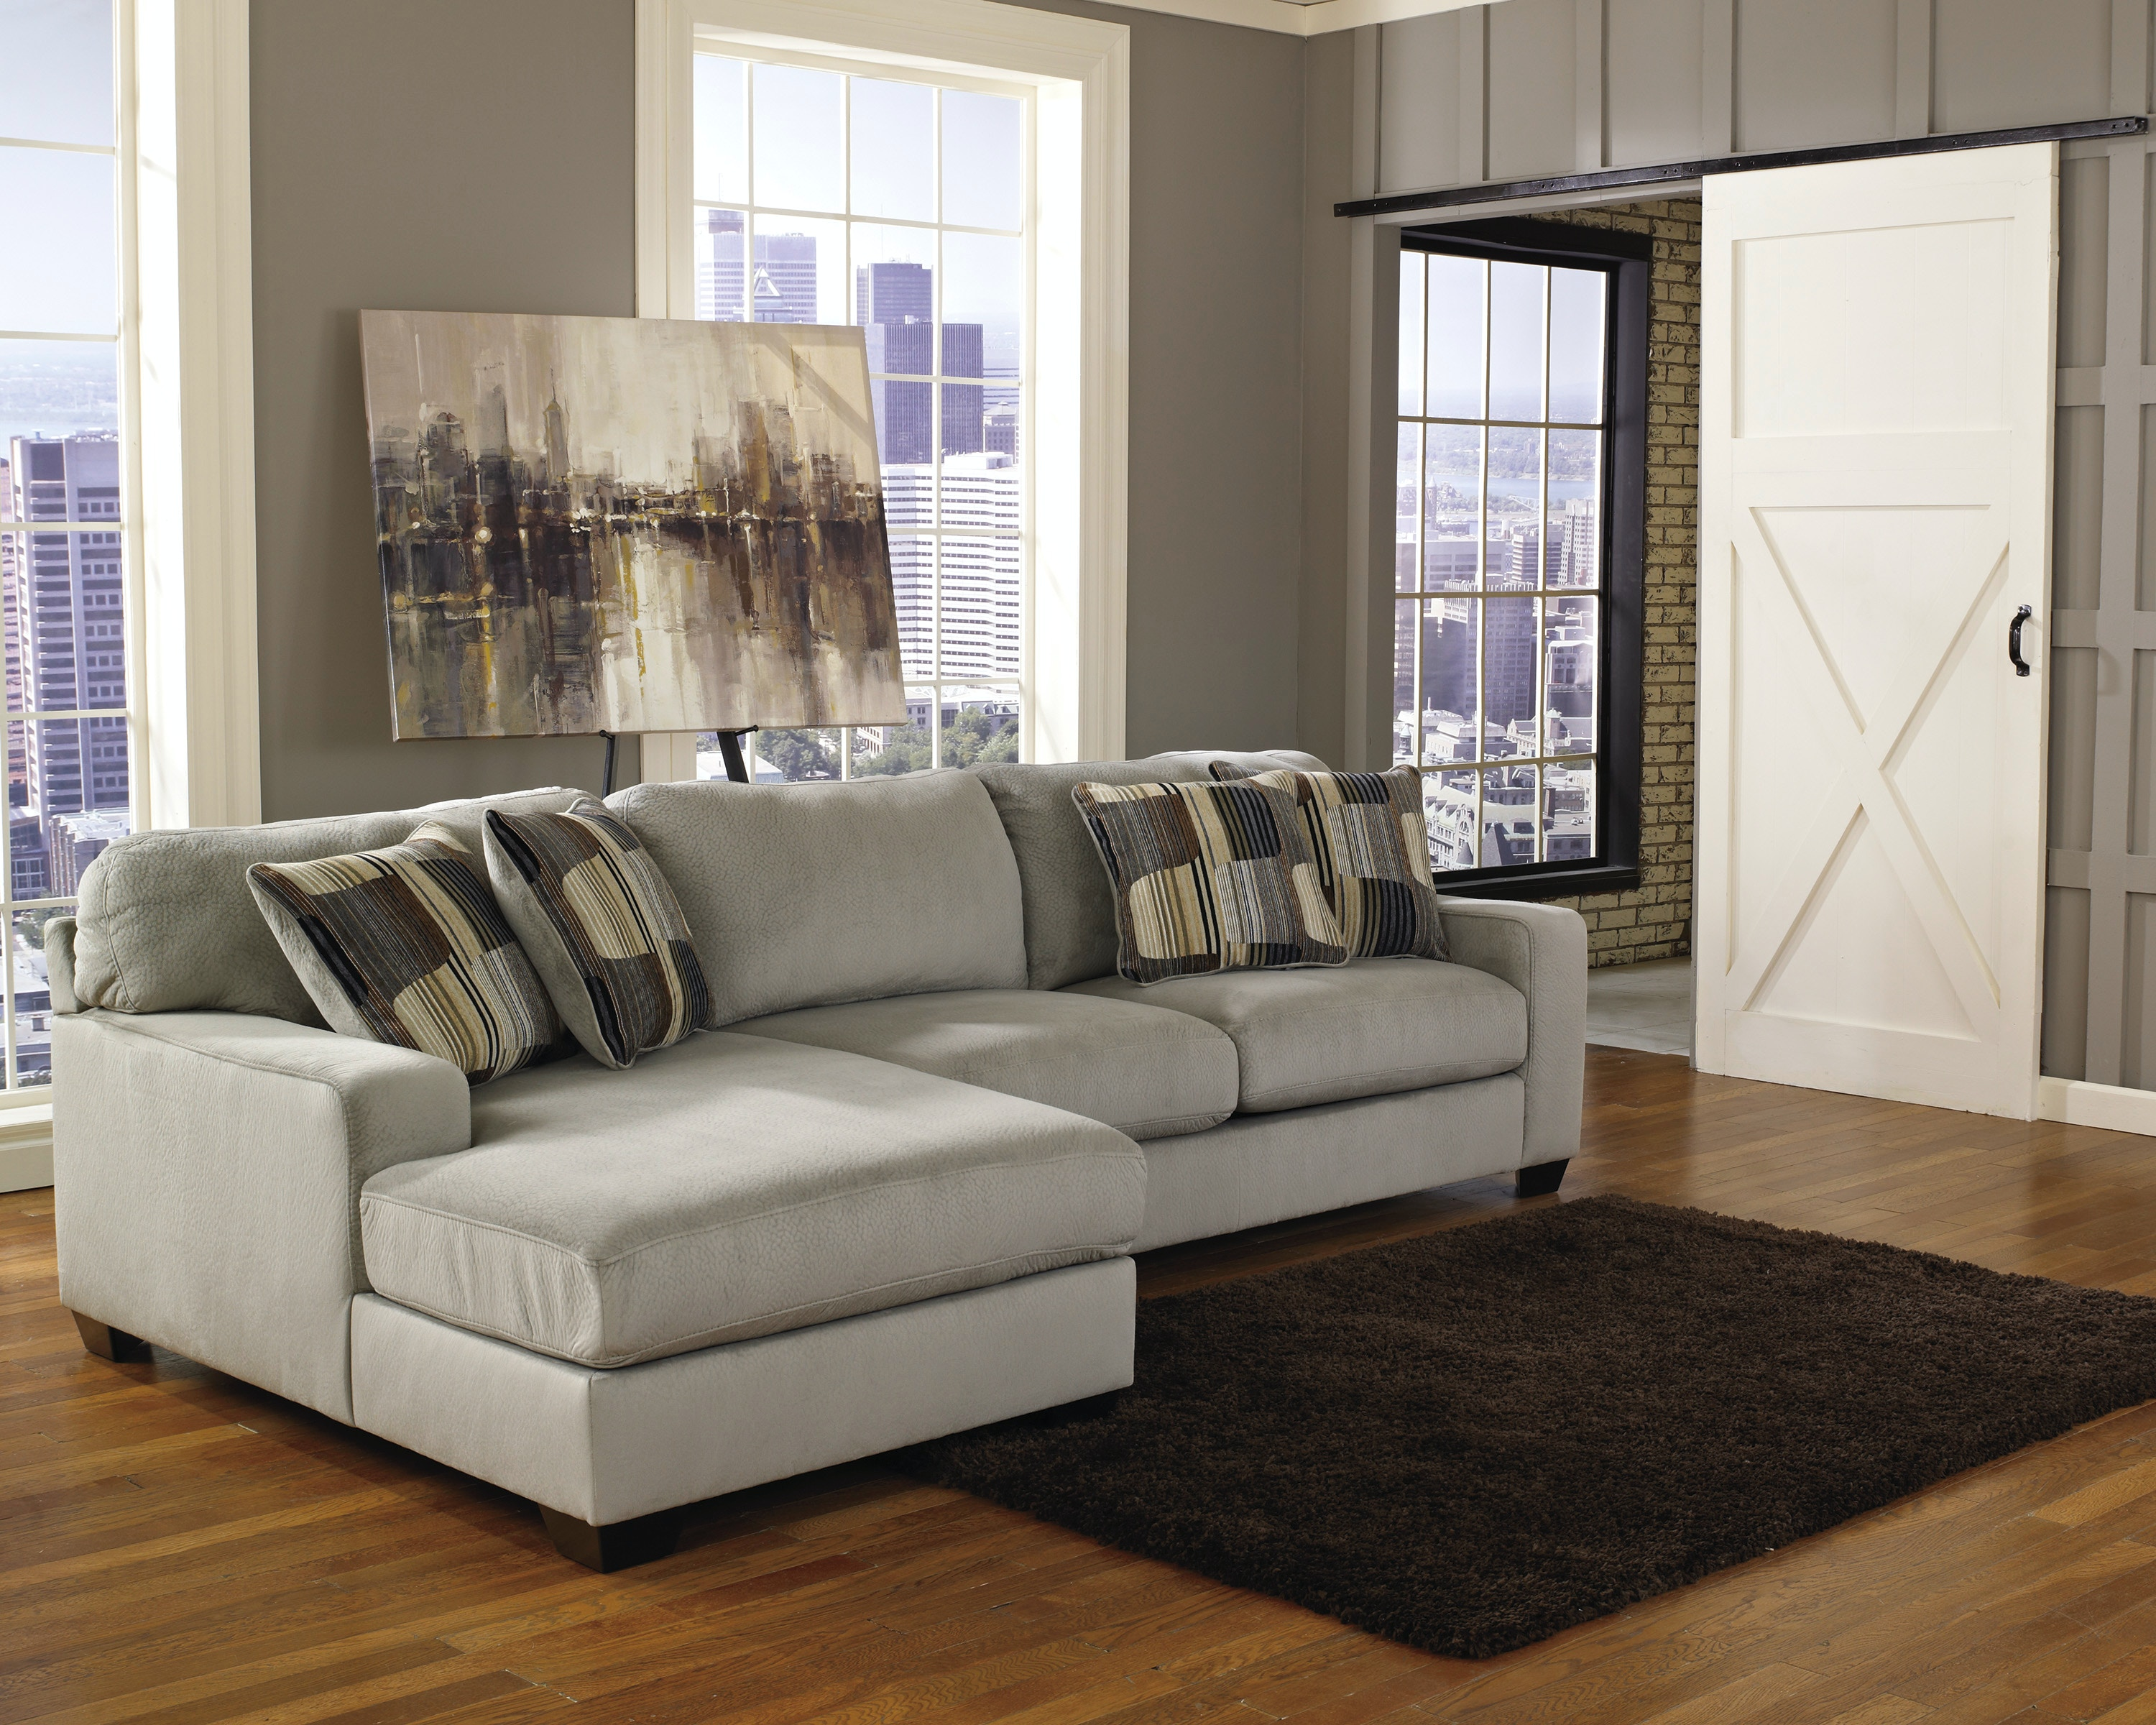 Ashley Furniture Westen Sectional 19501S1 : ashley furniture sofa sectionals - Sectionals, Sofas & Couches